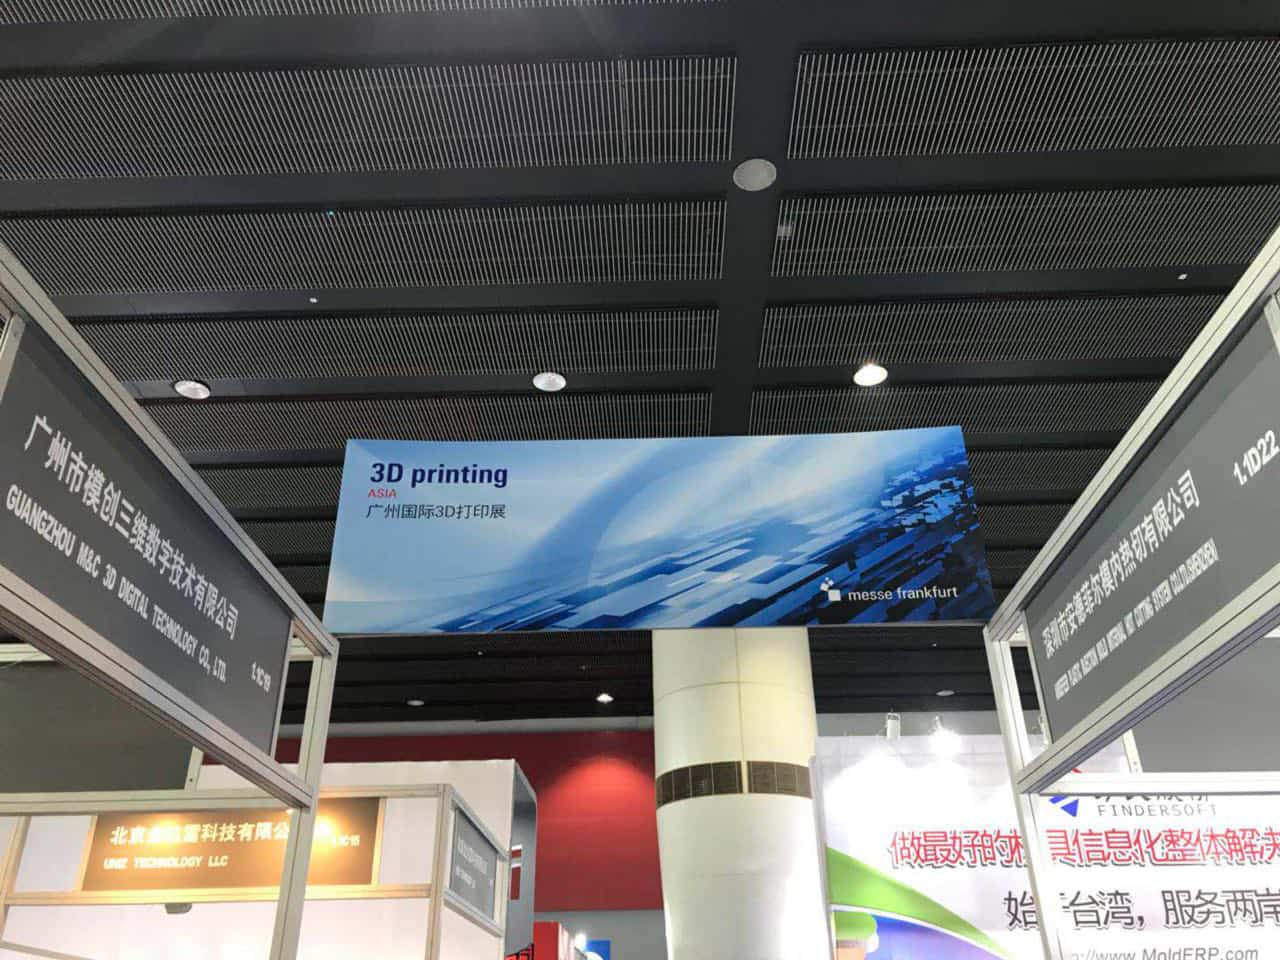 D Printing Exhibition Singapore : Cruse at asia d printing exhibition in guangzhou